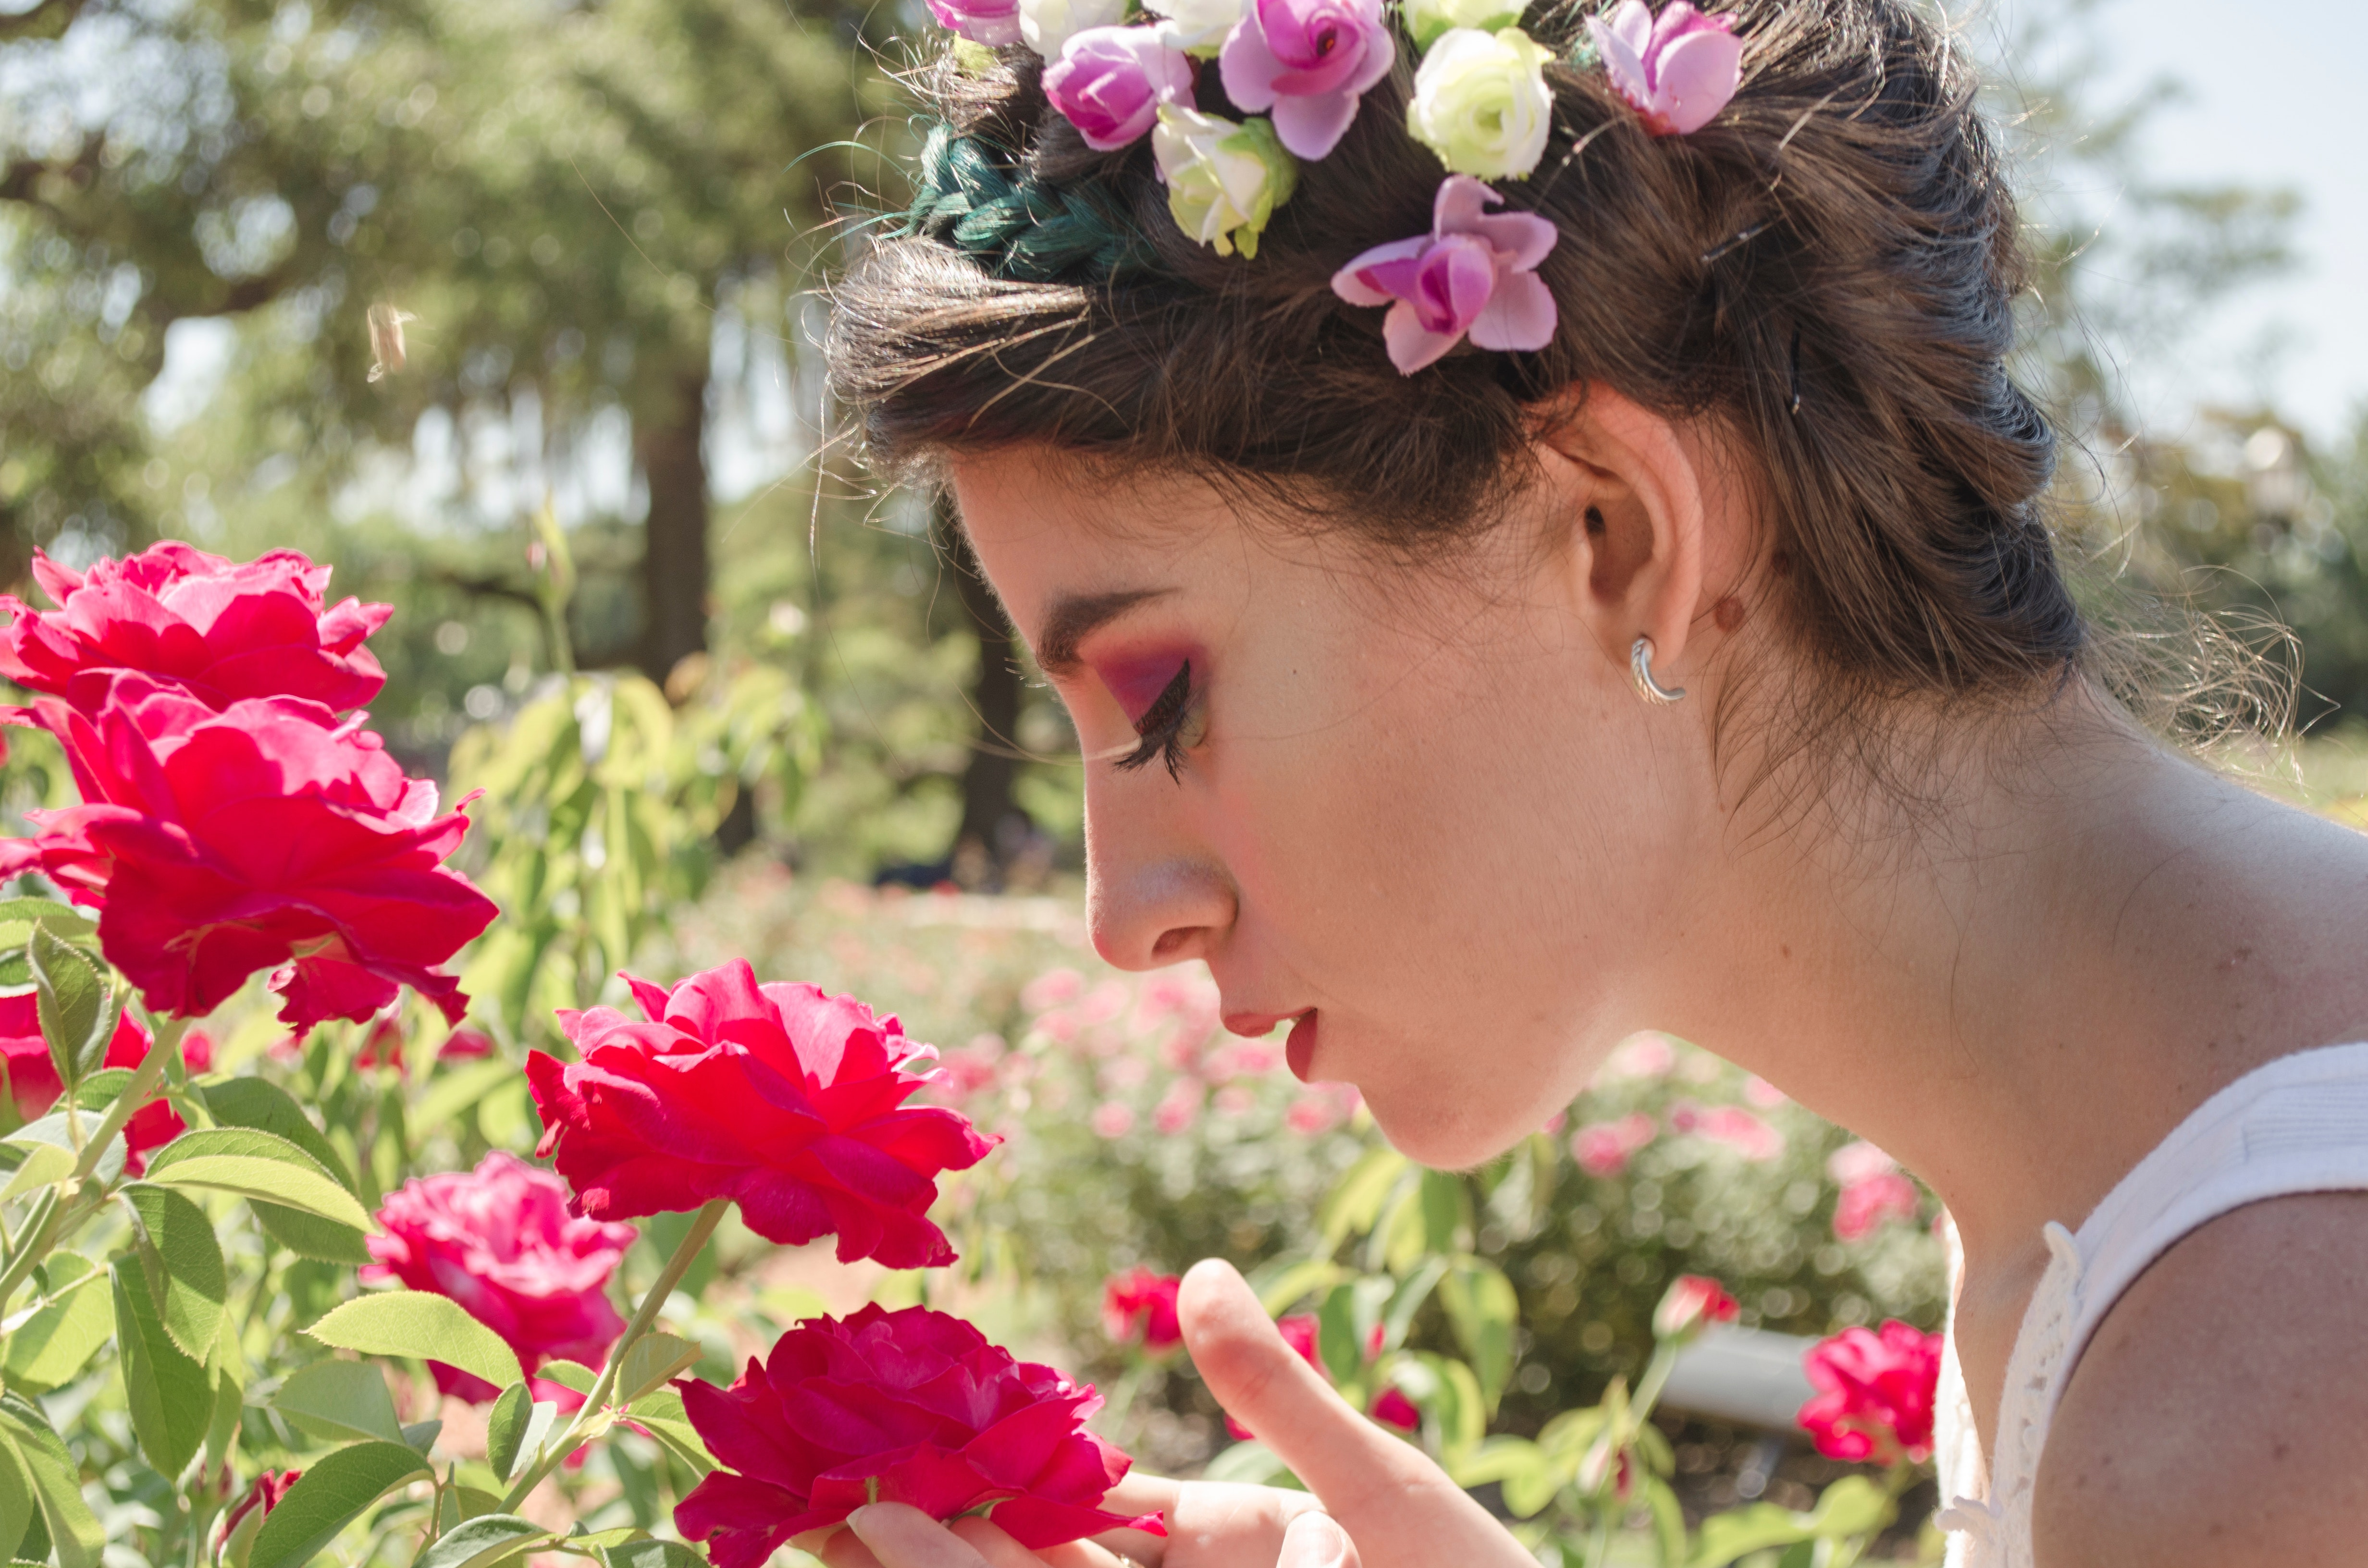 Free photo woman in floral headdress sniffing on red flowers woman in floral headdress sniffing on red flowers photo izmirmasajfo